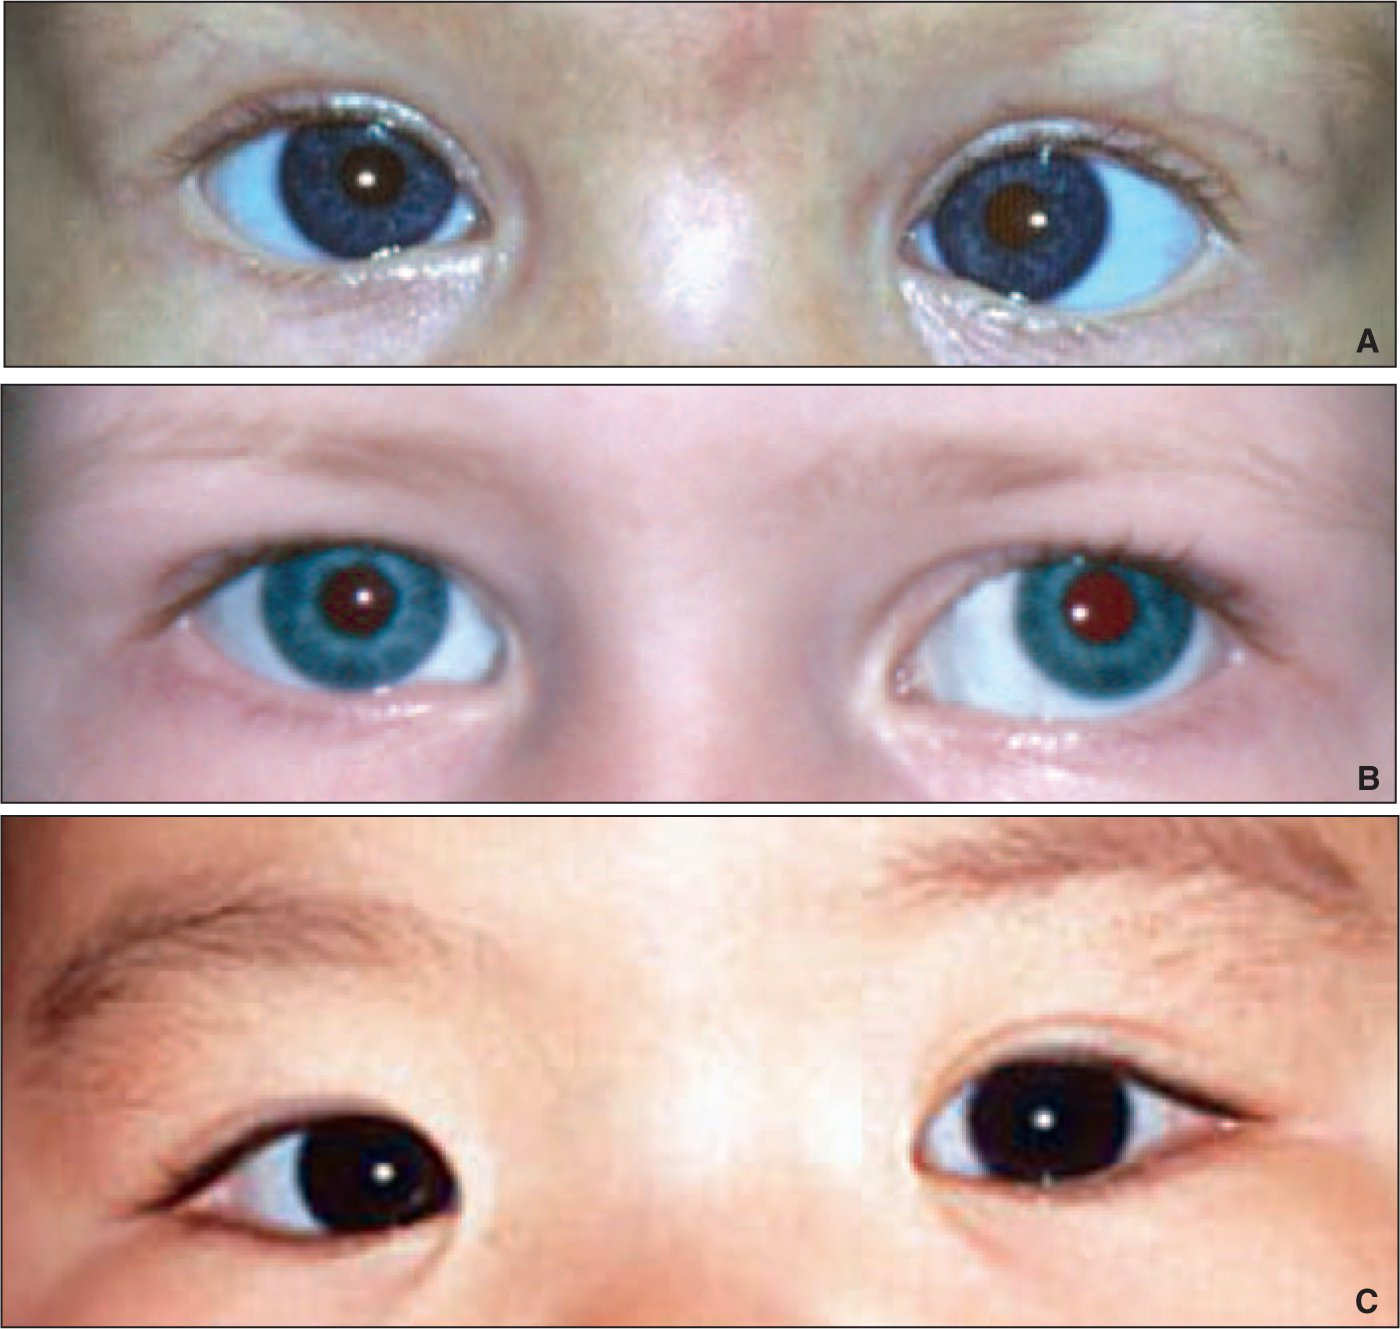 Effective Vision Screening Of Young Children In The Pediatric Office